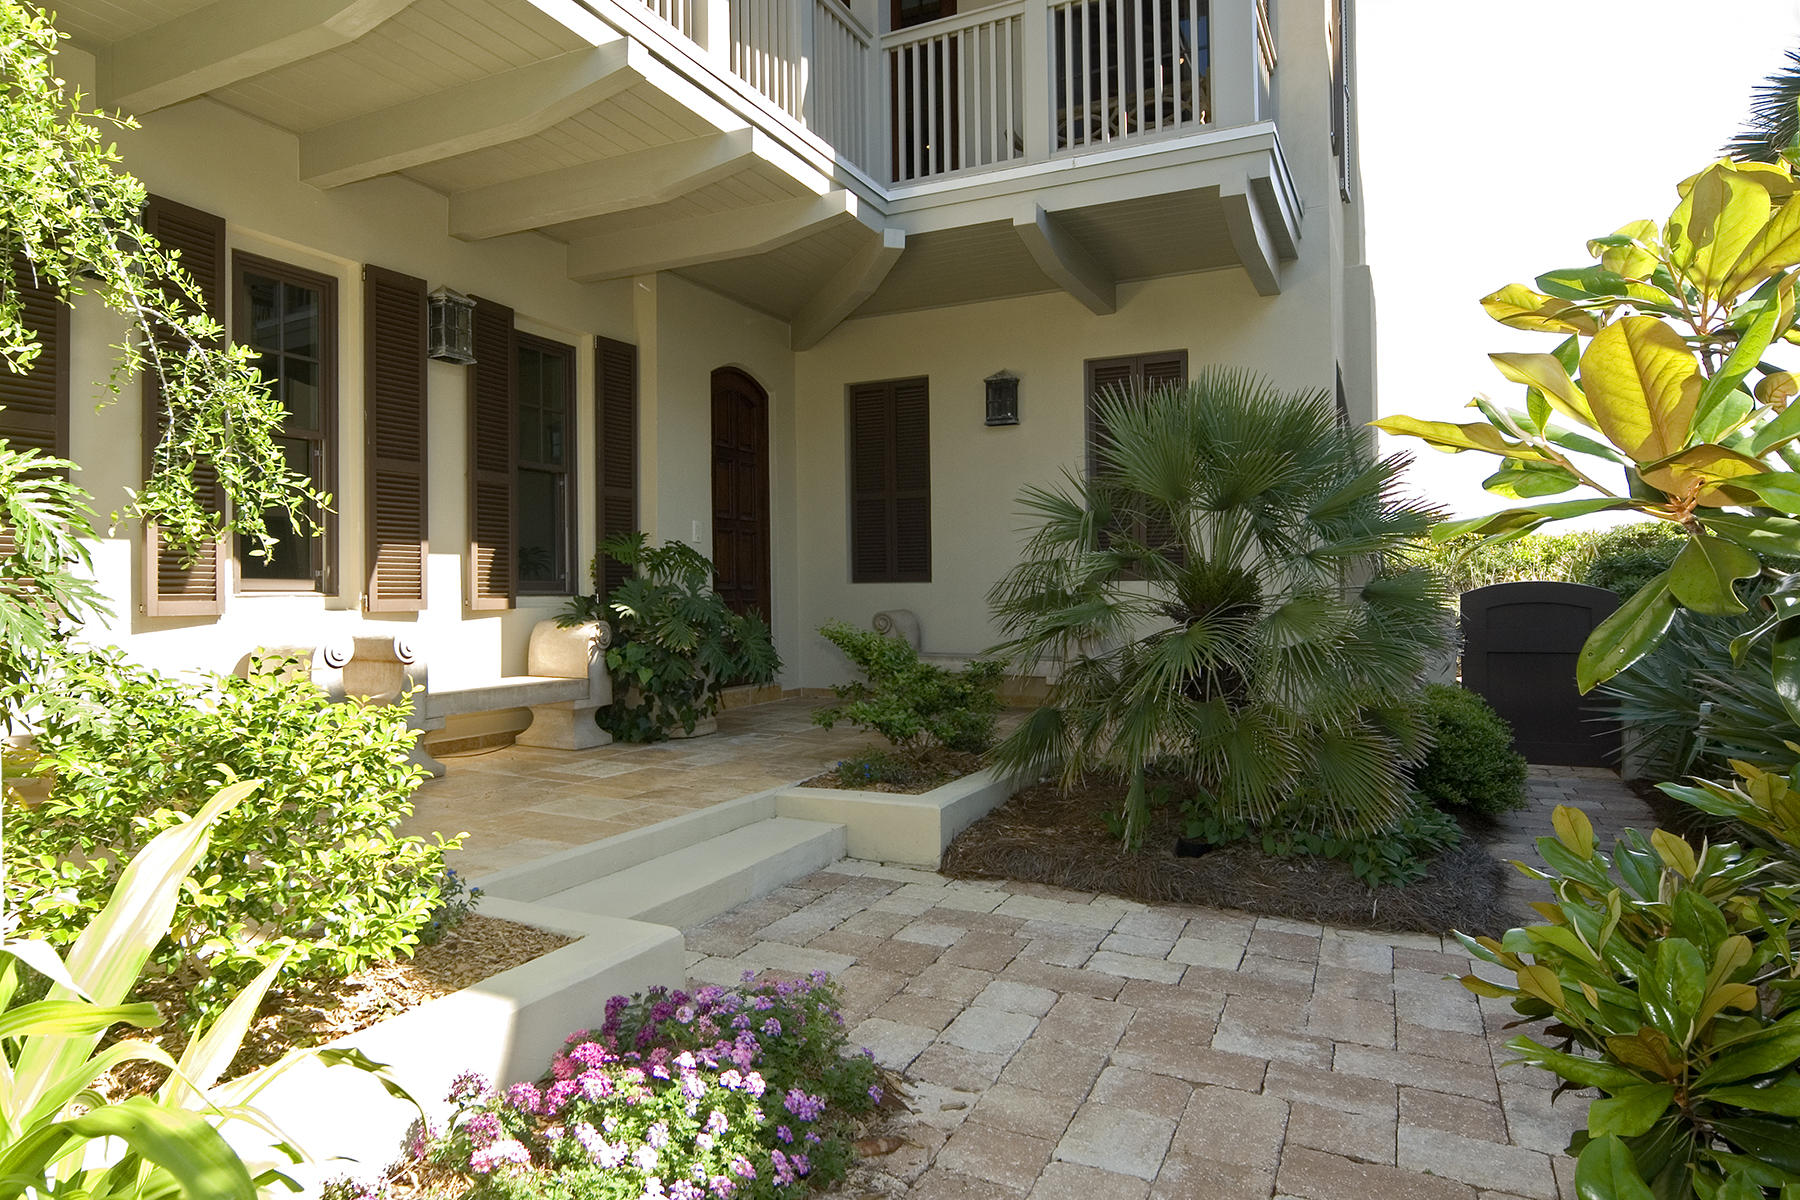 Single Family Home for Sale at RELAXED ATMOSPHERE OF UPSCALE LUXURY 152 E Saint Lucia Lane Santa Rosa Beach, Florida, 32459 United States